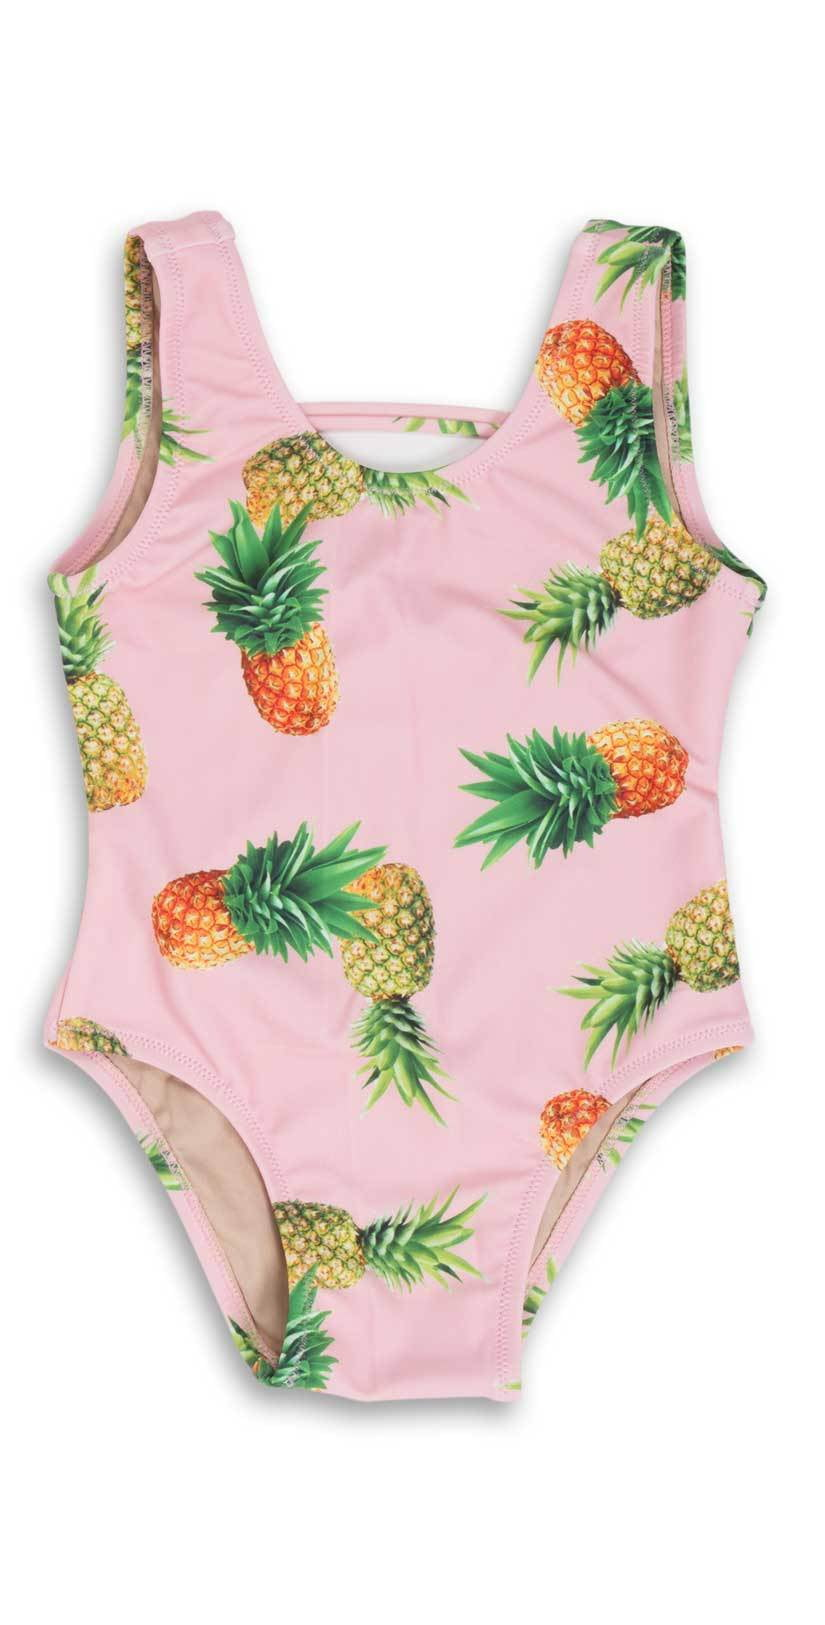 Shade Critters Girls Pineapple One Piece Swimsuit in Pink-SG01A-010: